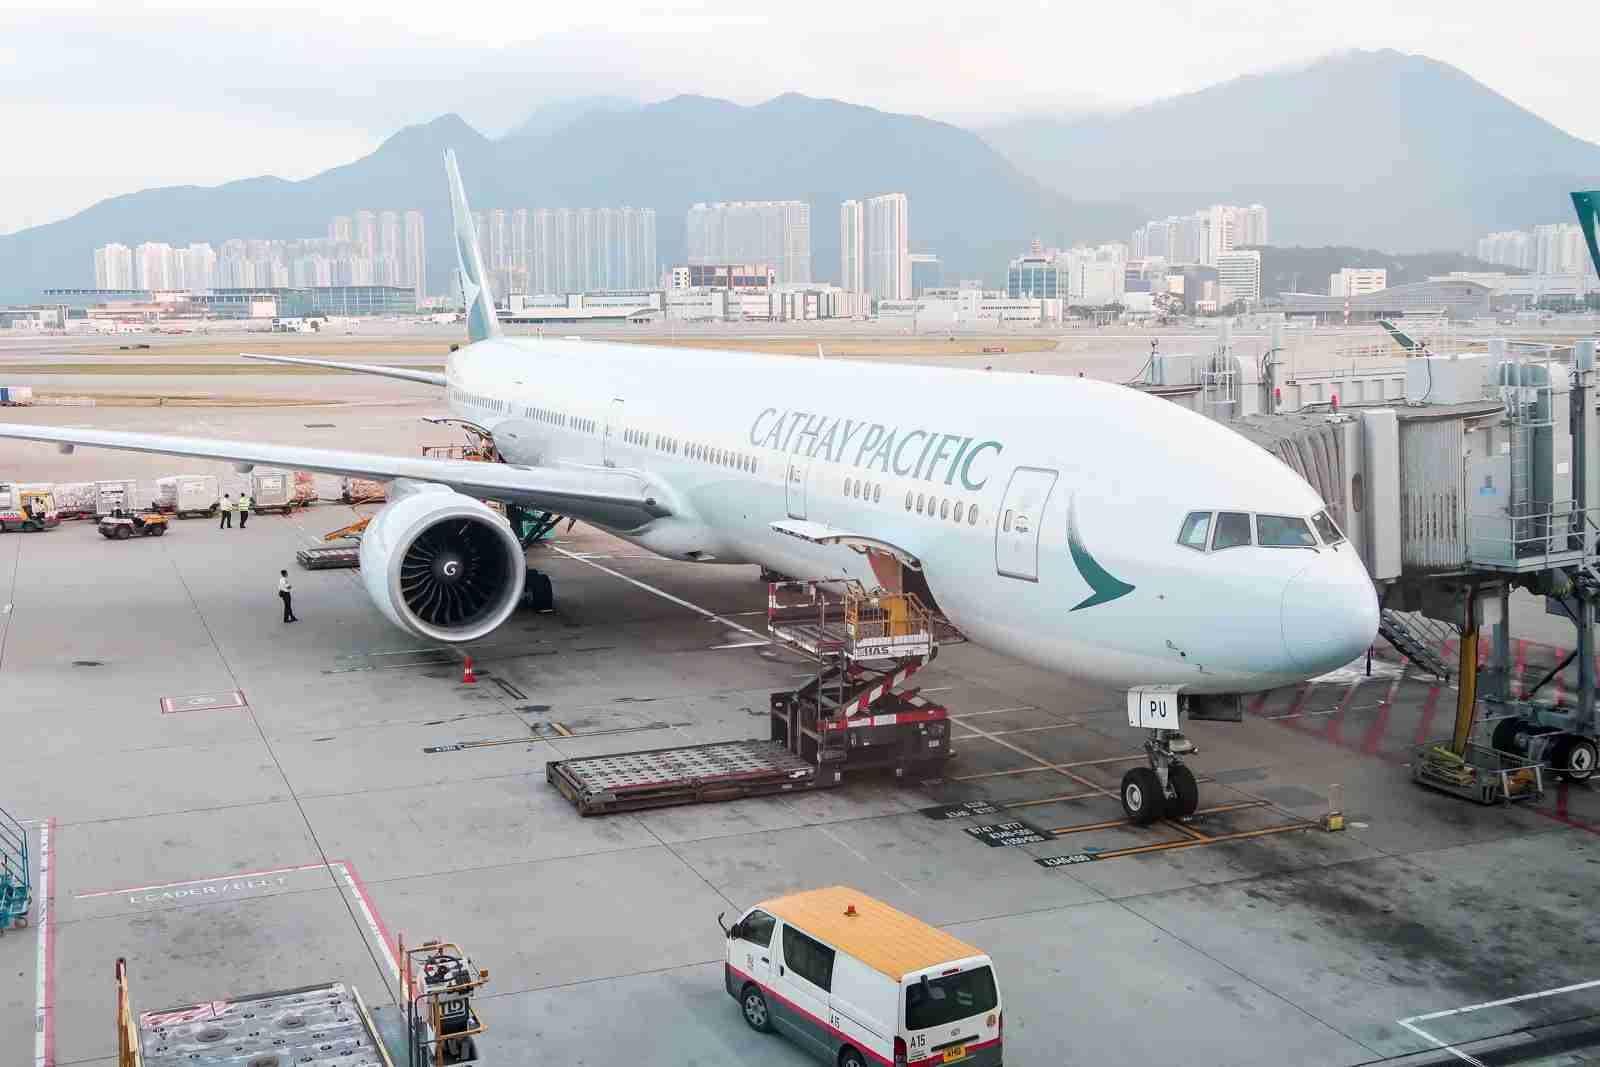 A Cathay Pacific aircraft in Hong Kong (Photo by JT Genter / The Points Guy)